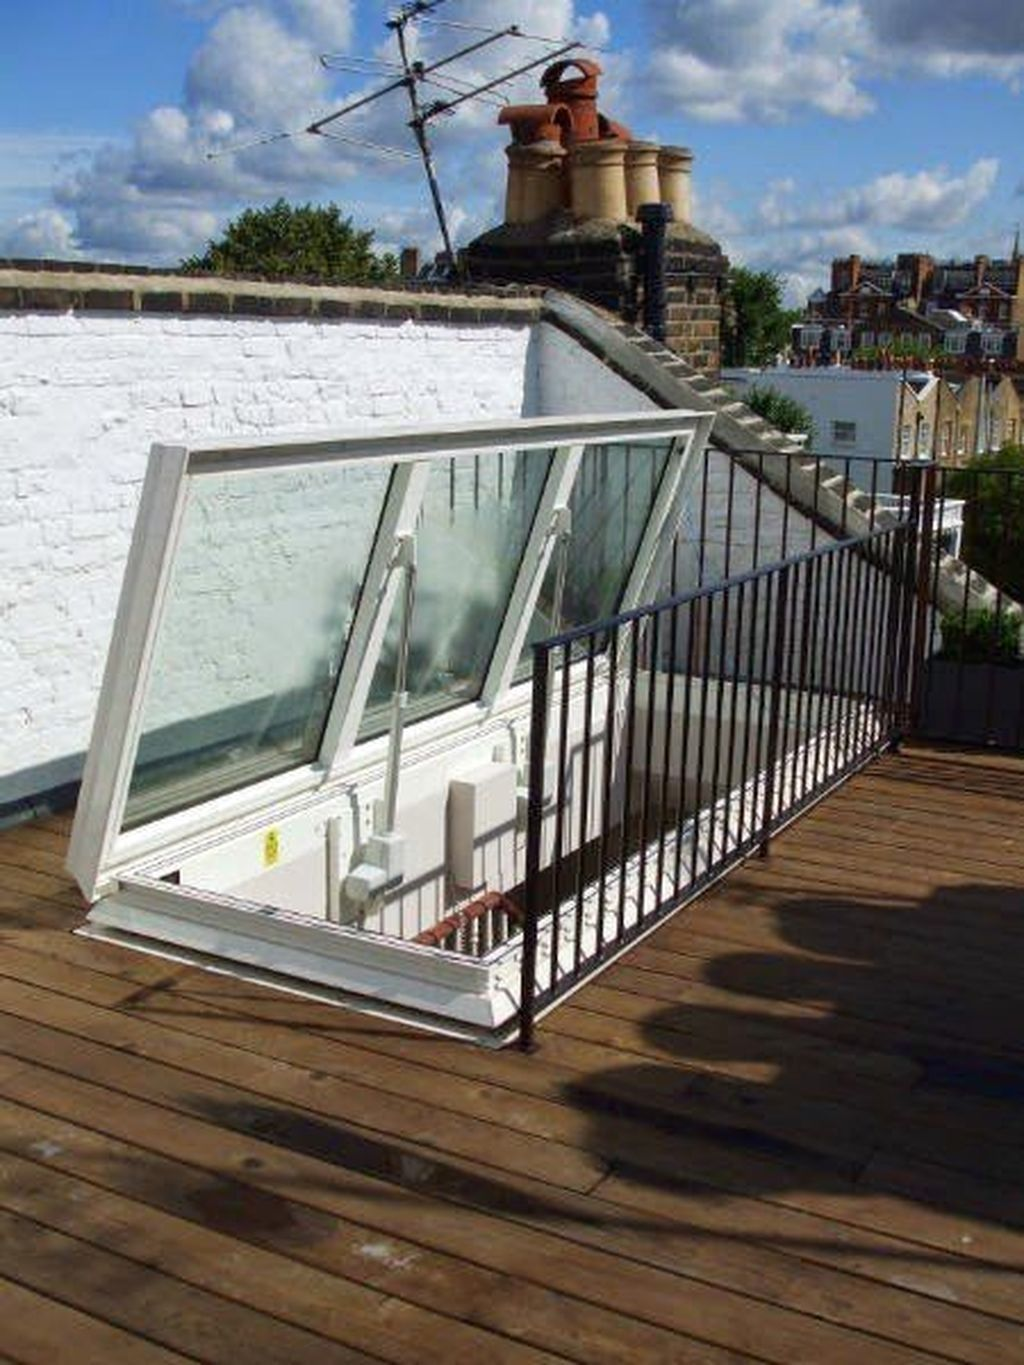 Cool 38 Excellent Rooftop Design Ideas To Get Inspired More At Https Homyfeed Com 2019 05 12 38 Excellent Roo Rooftop Design Rooftop Patio Roof Access Hatch